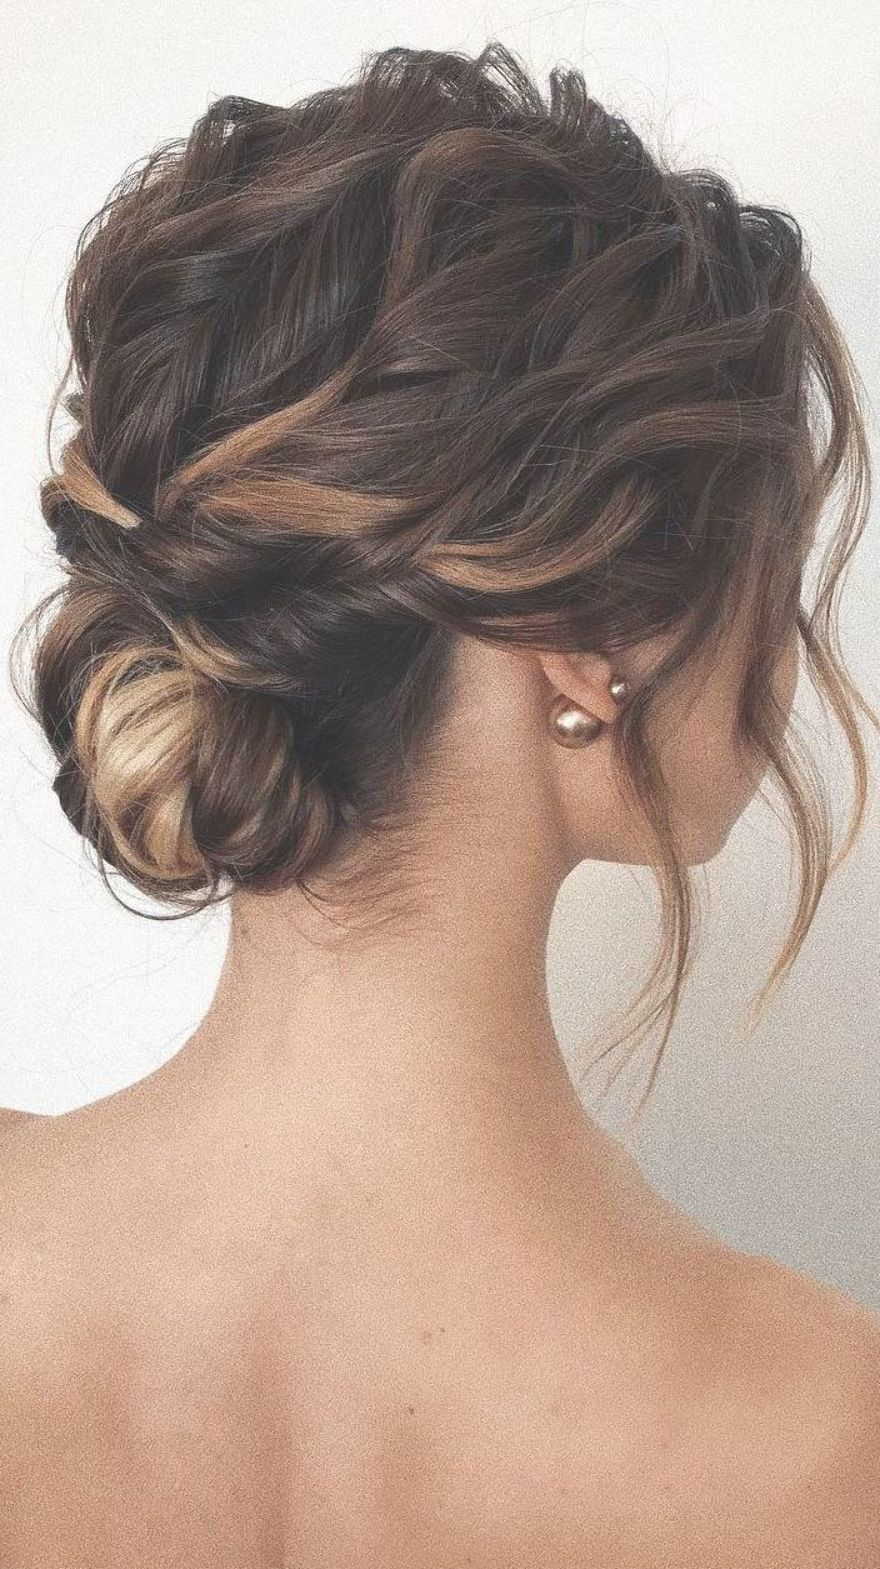 Romantic Updo Hairstyles Updo Hairstyle Simple Updo Messy Bridal Updo Hairstyle Updo Hairstyles Wedding Romantic Updo Hairstyles Chic Hairstyles Hair Styles